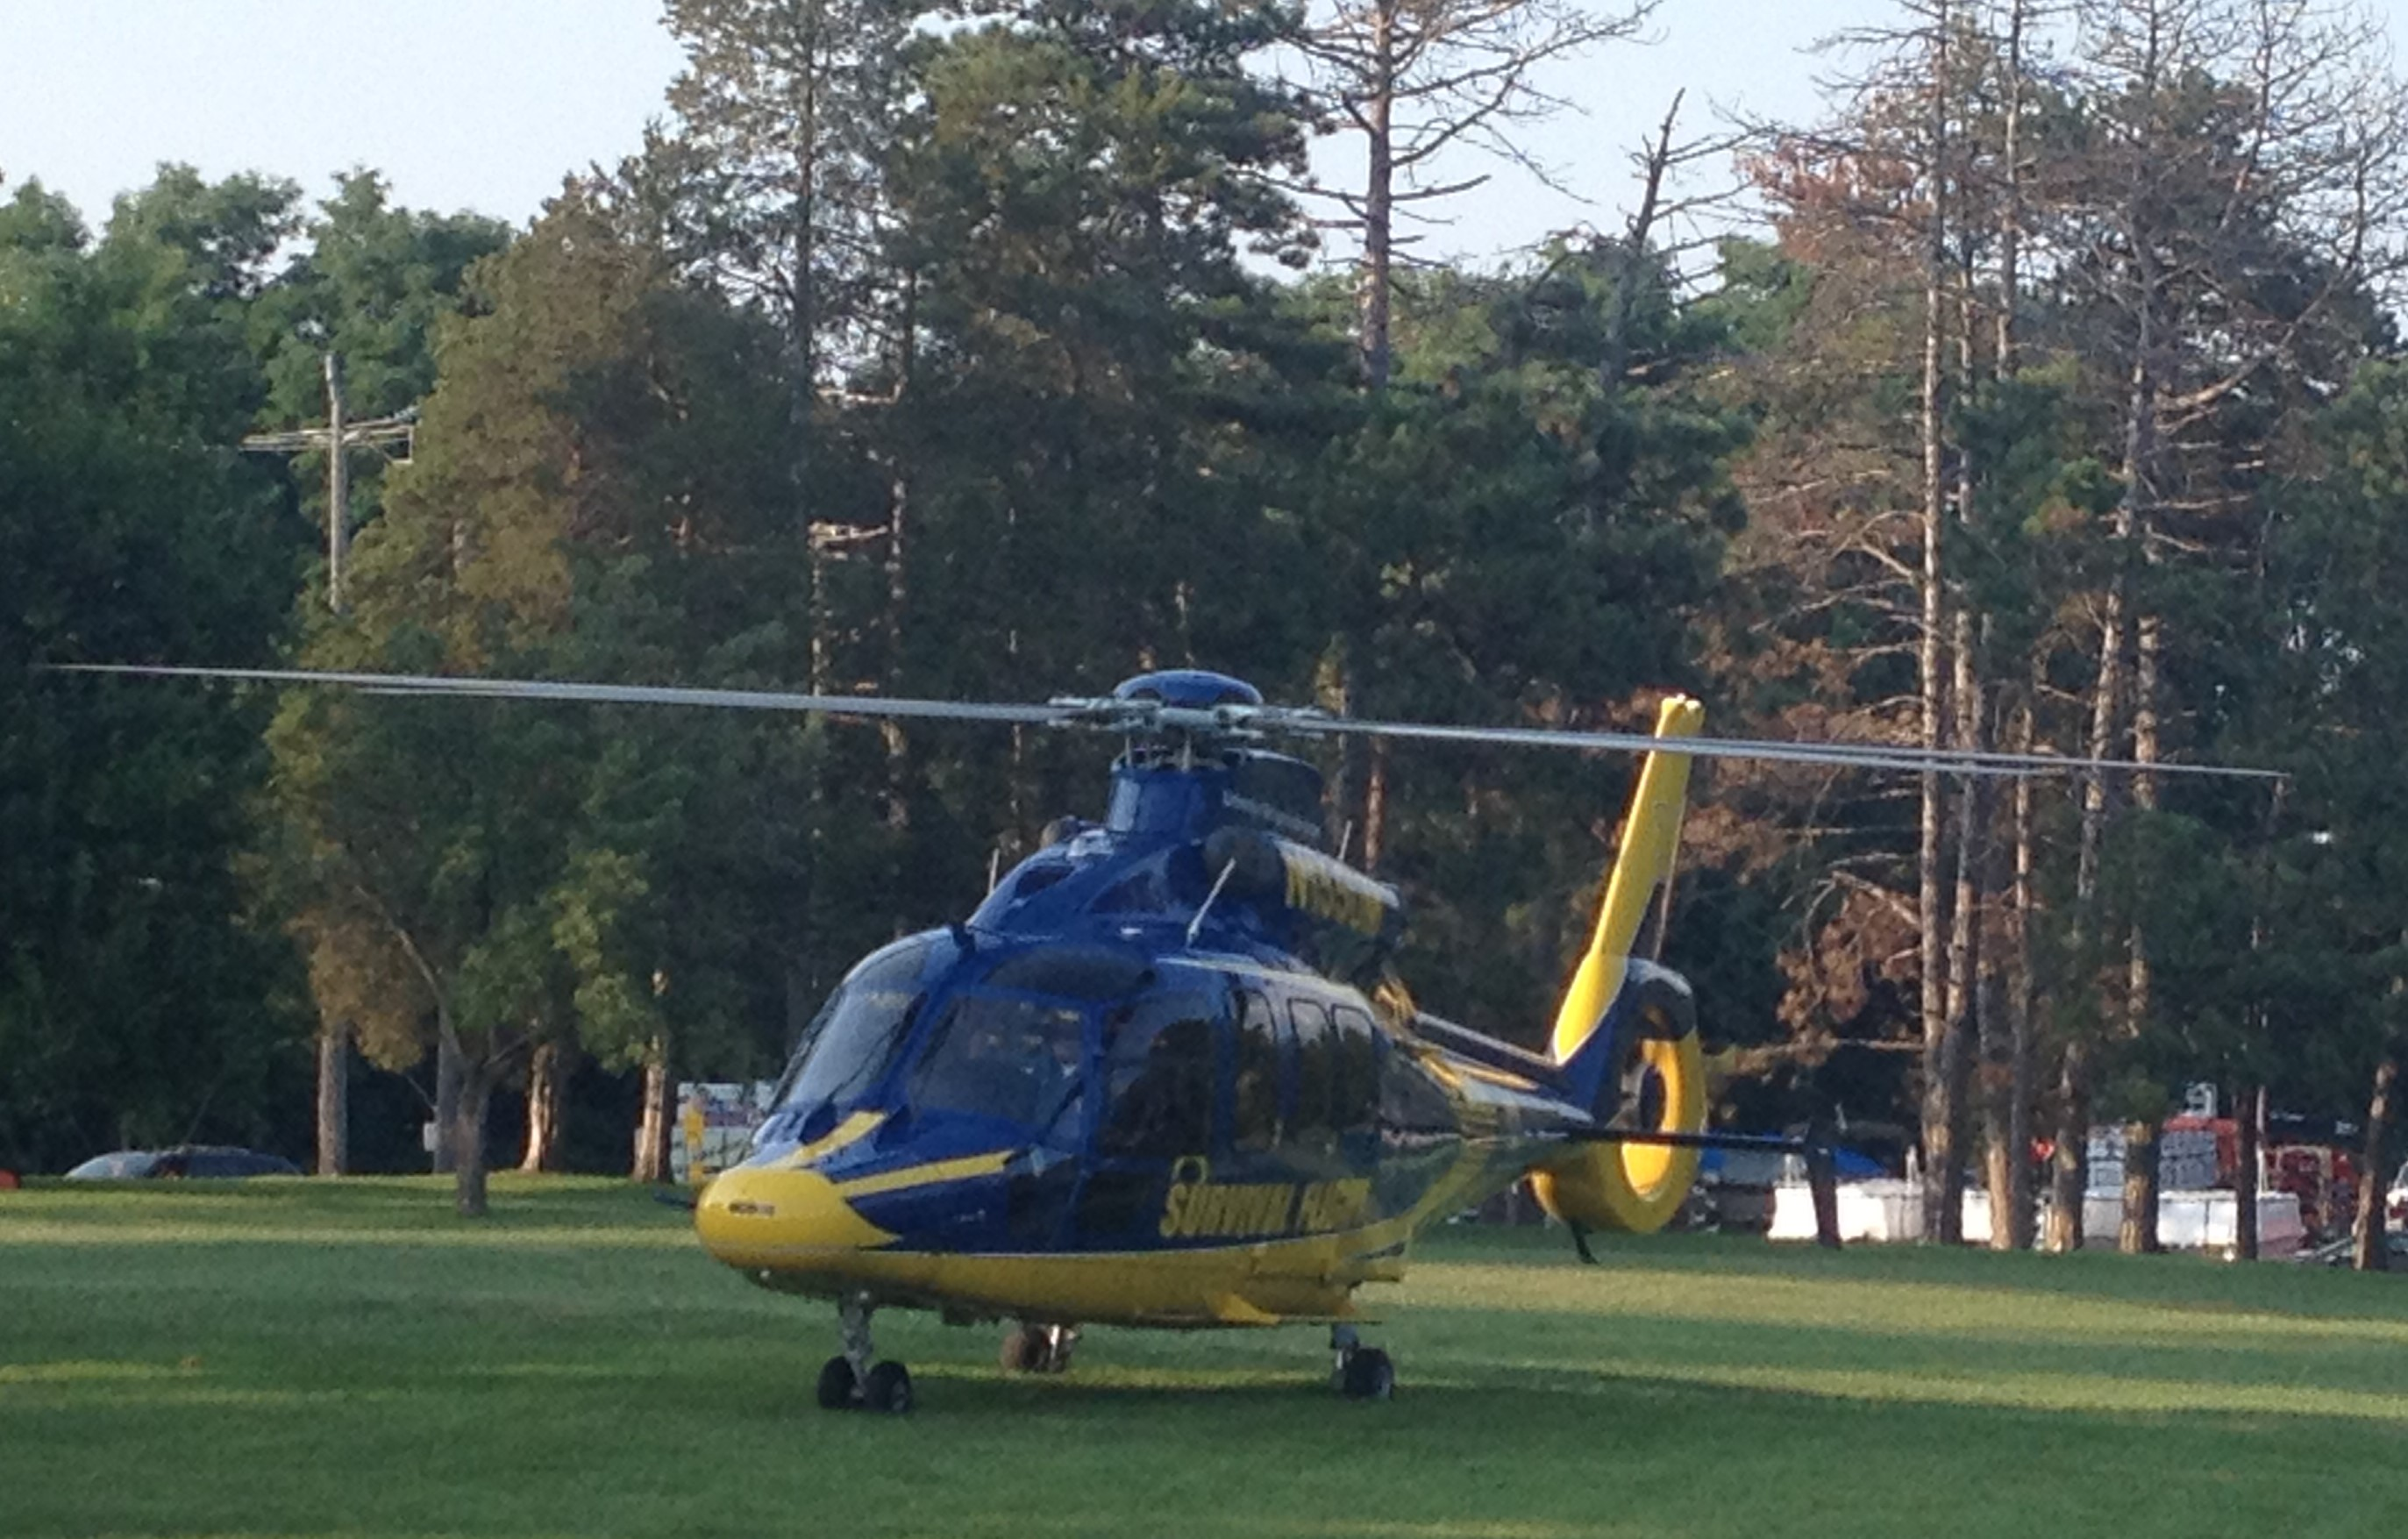 Survival Flight. Photo courtesy of Manchester Township Fire Department.